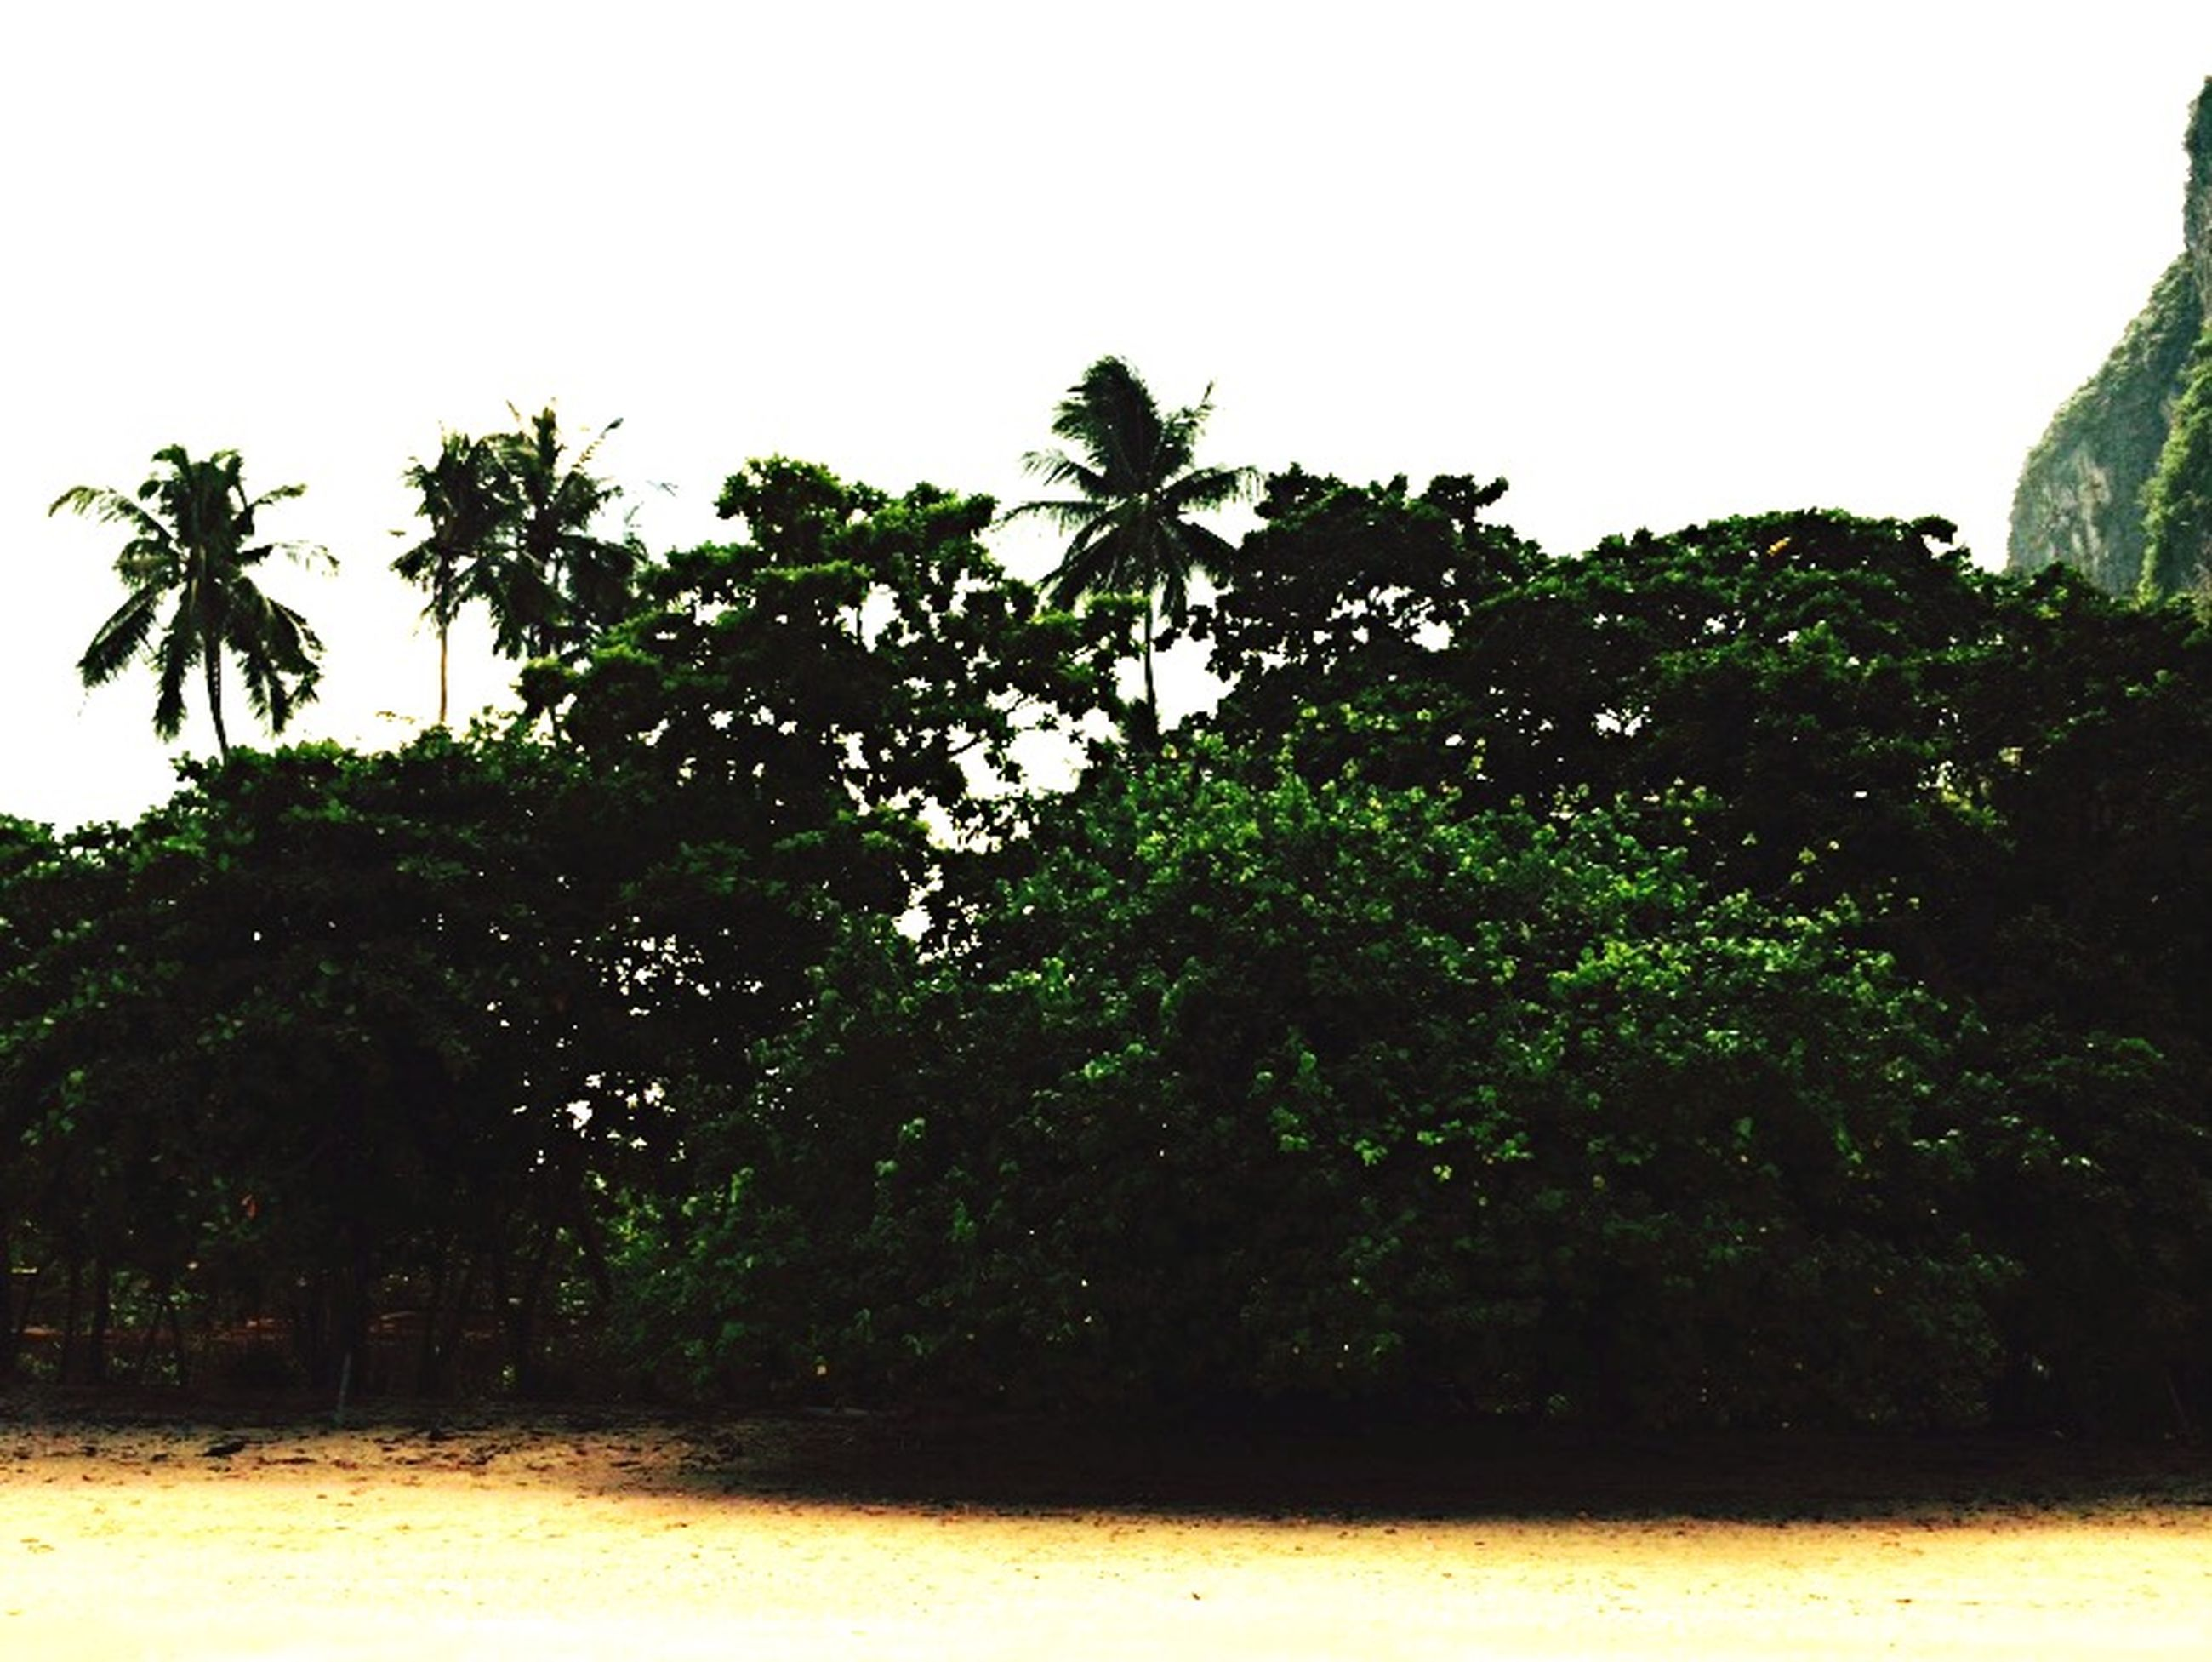 tree, clear sky, growth, green color, copy space, low angle view, nature, plant, palm tree, tranquility, leaf, green, lush foliage, beauty in nature, growing, day, outdoors, sky, no people, branch